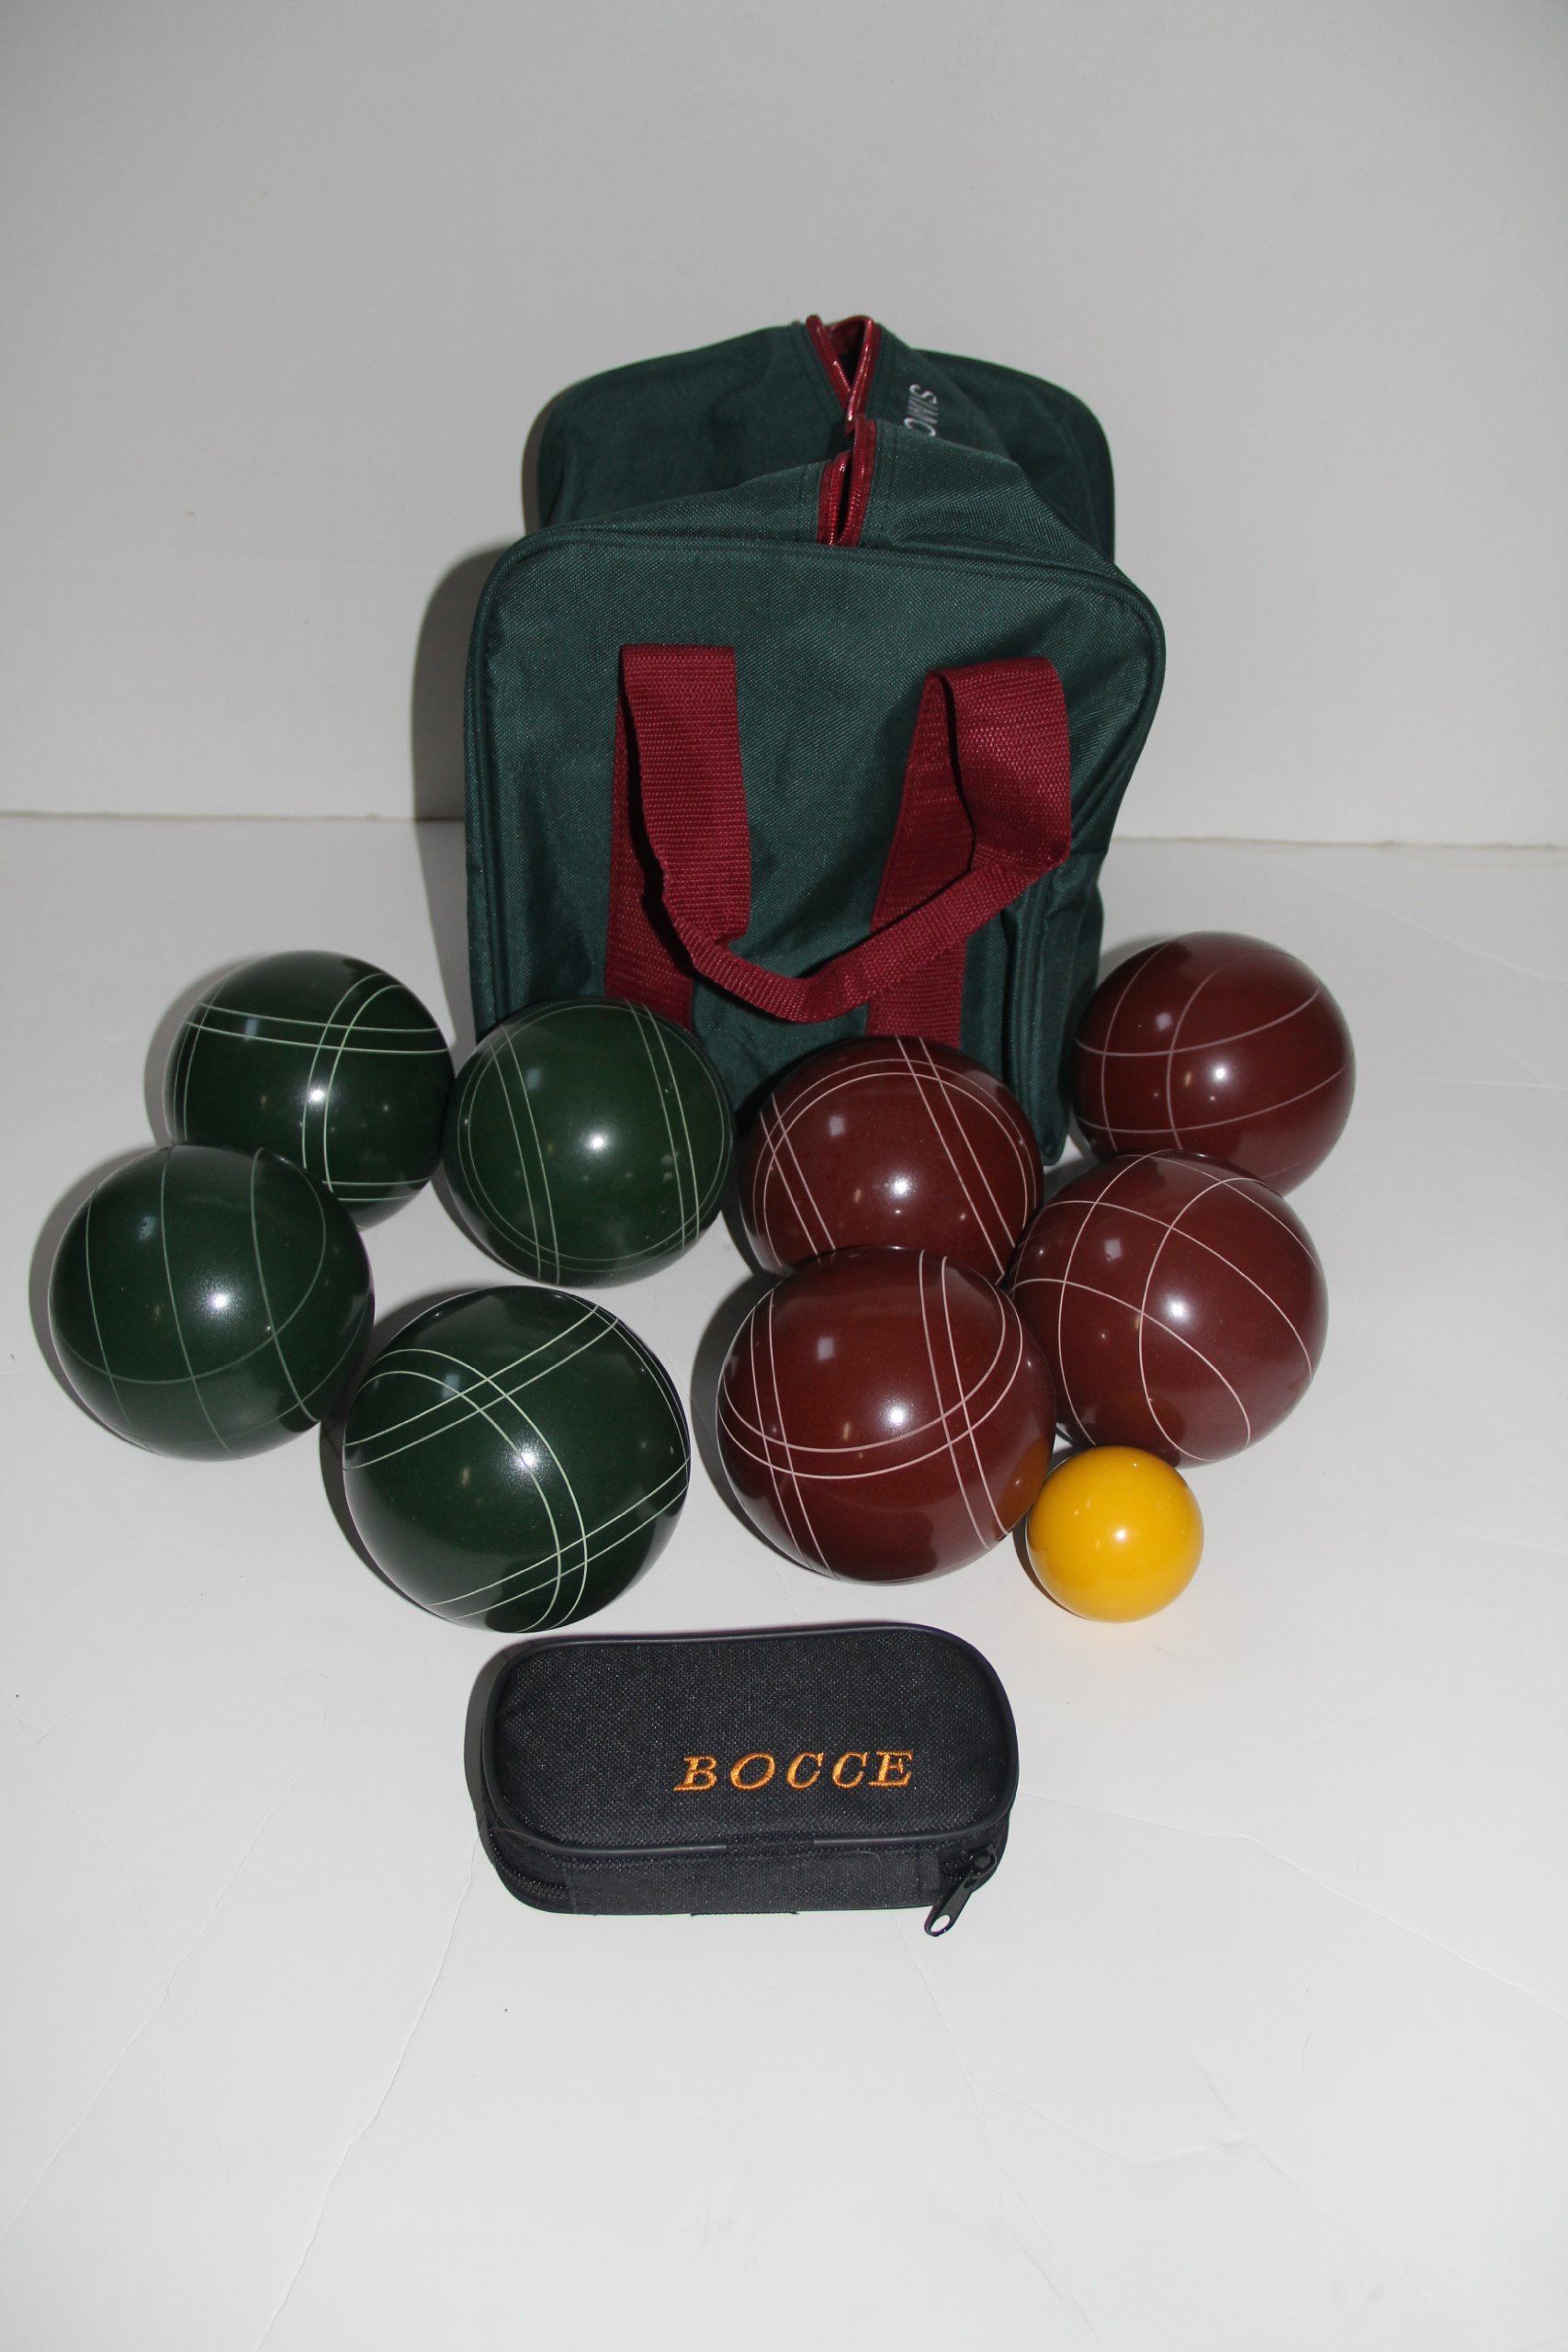 Bocce package - EPCO 107mm red and green bocce set and 33mm metal Petanque set by BuyBocceBalls